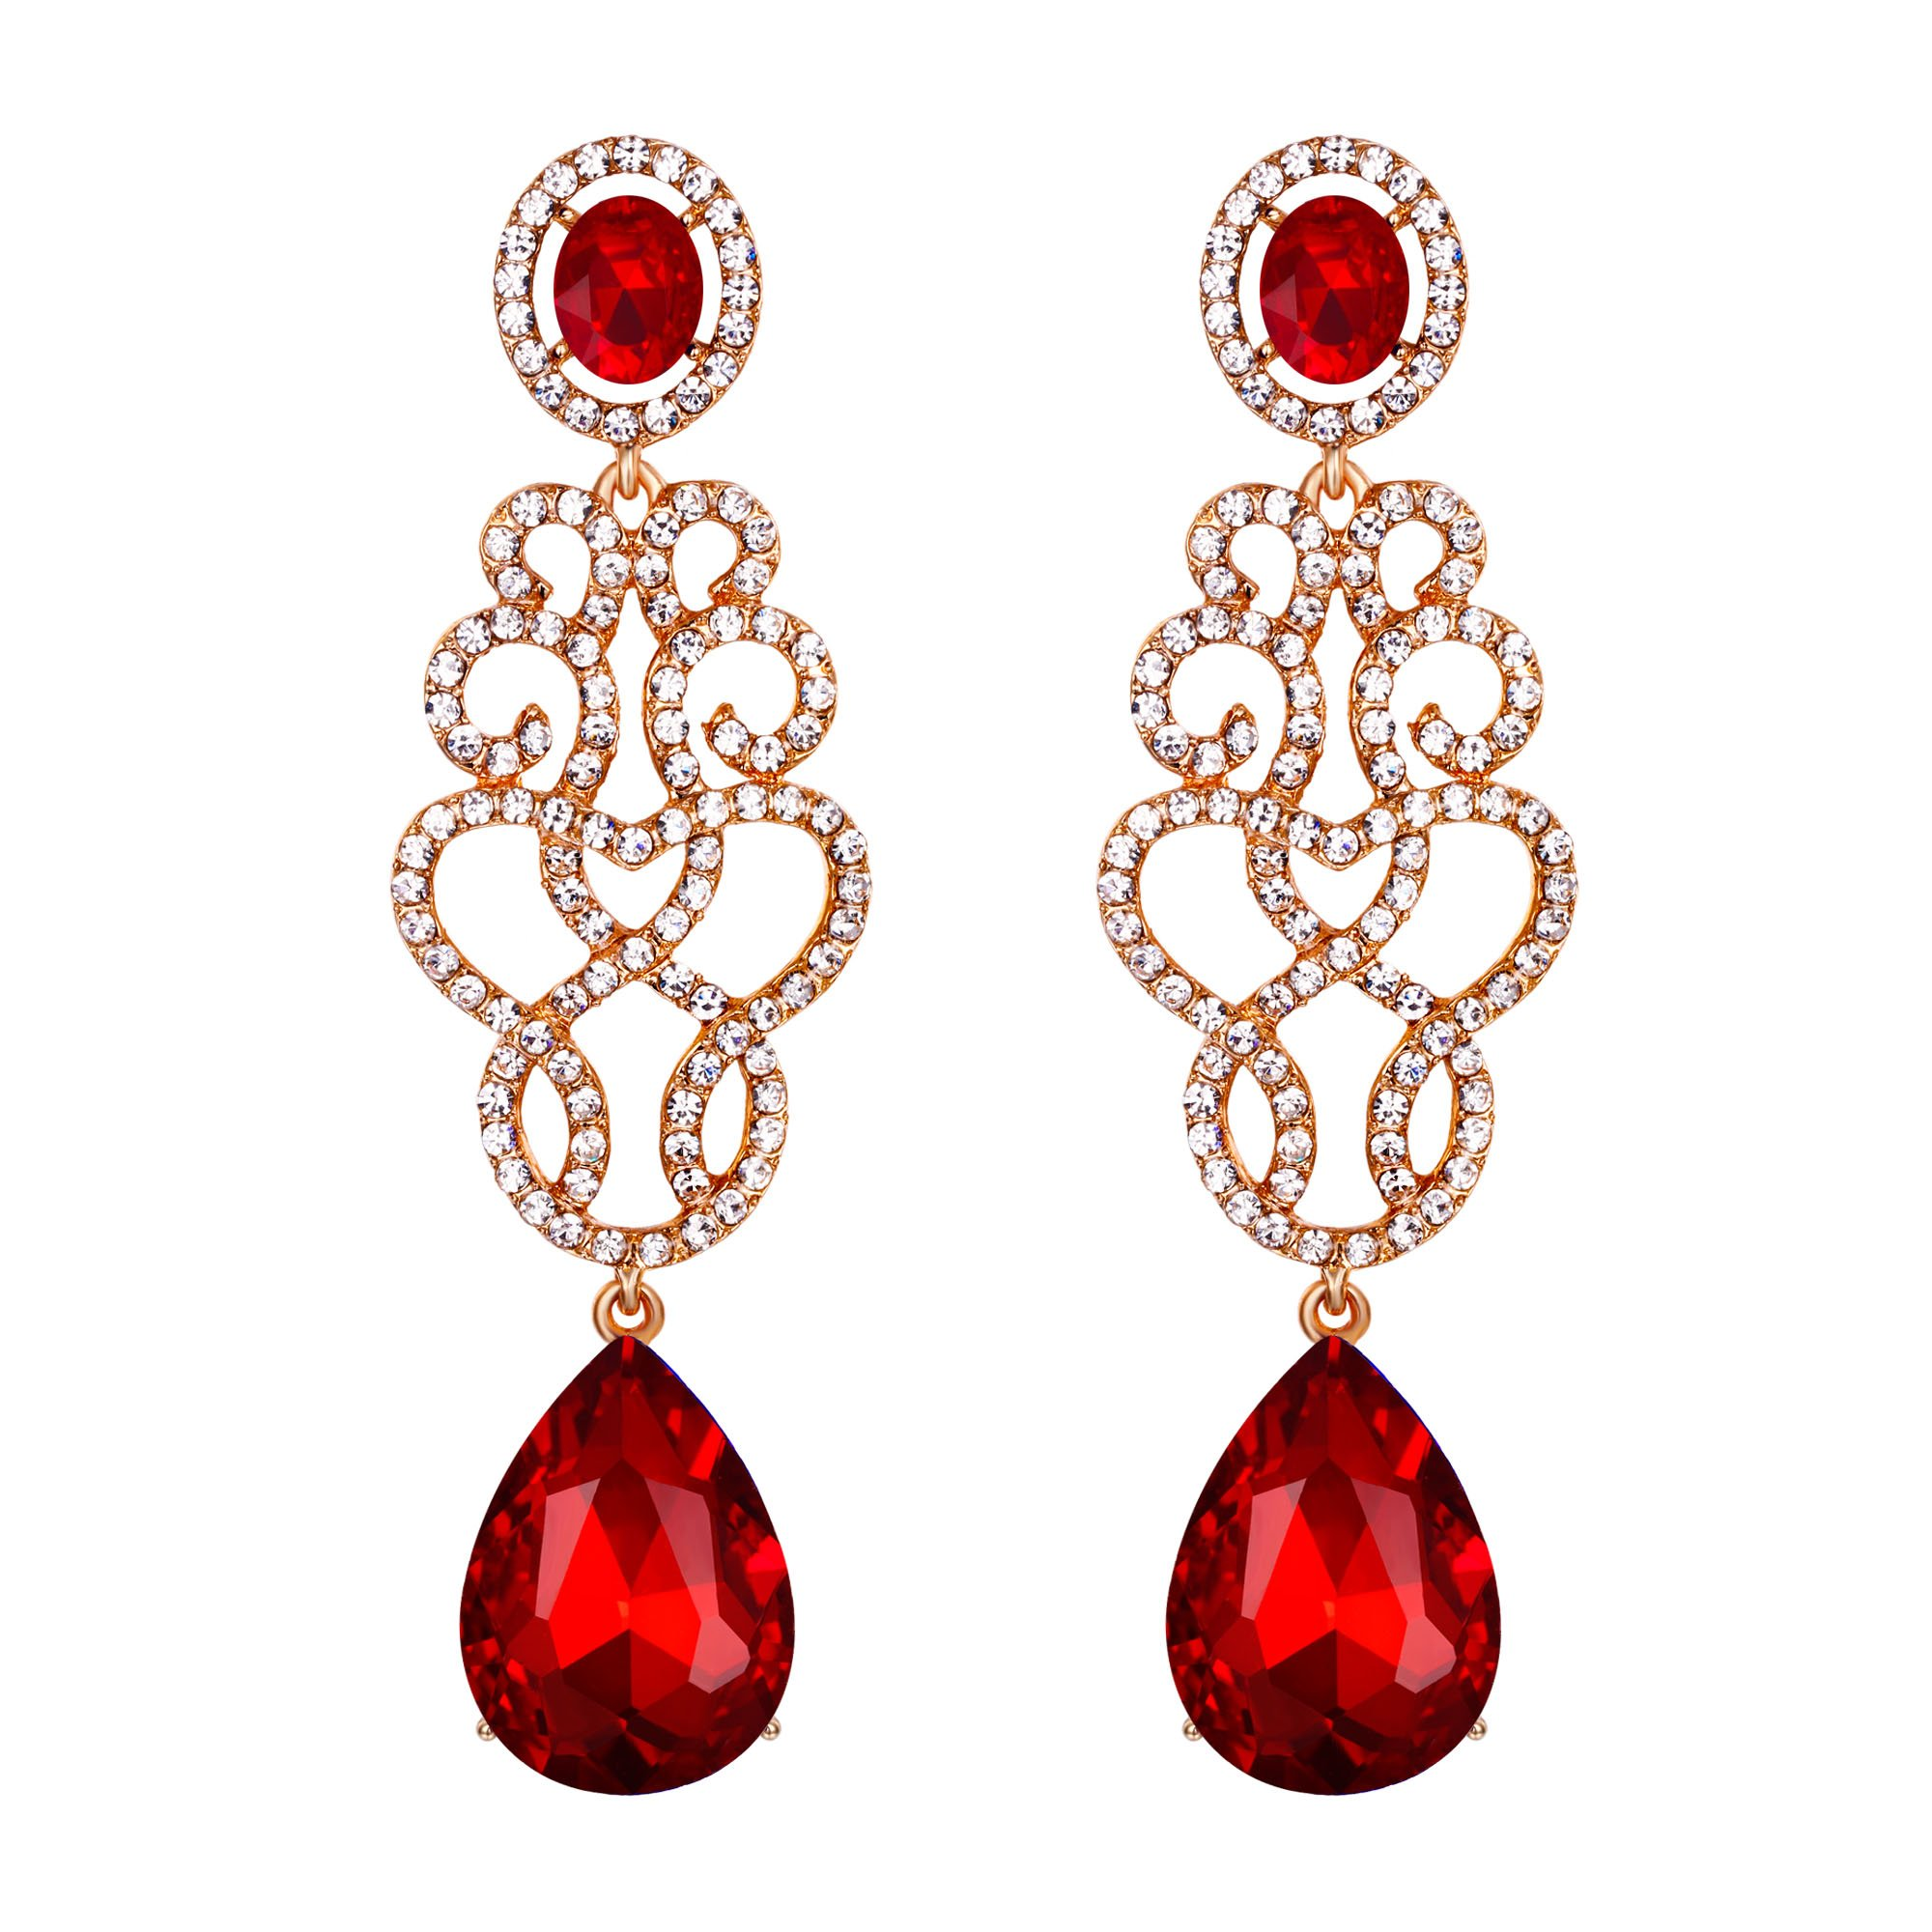 BriLove Gold-Toned Dangle Earrings for Women Wedding Bridal Crystal Floral Filigree Teardrop Chandelier Earring Ruby Color